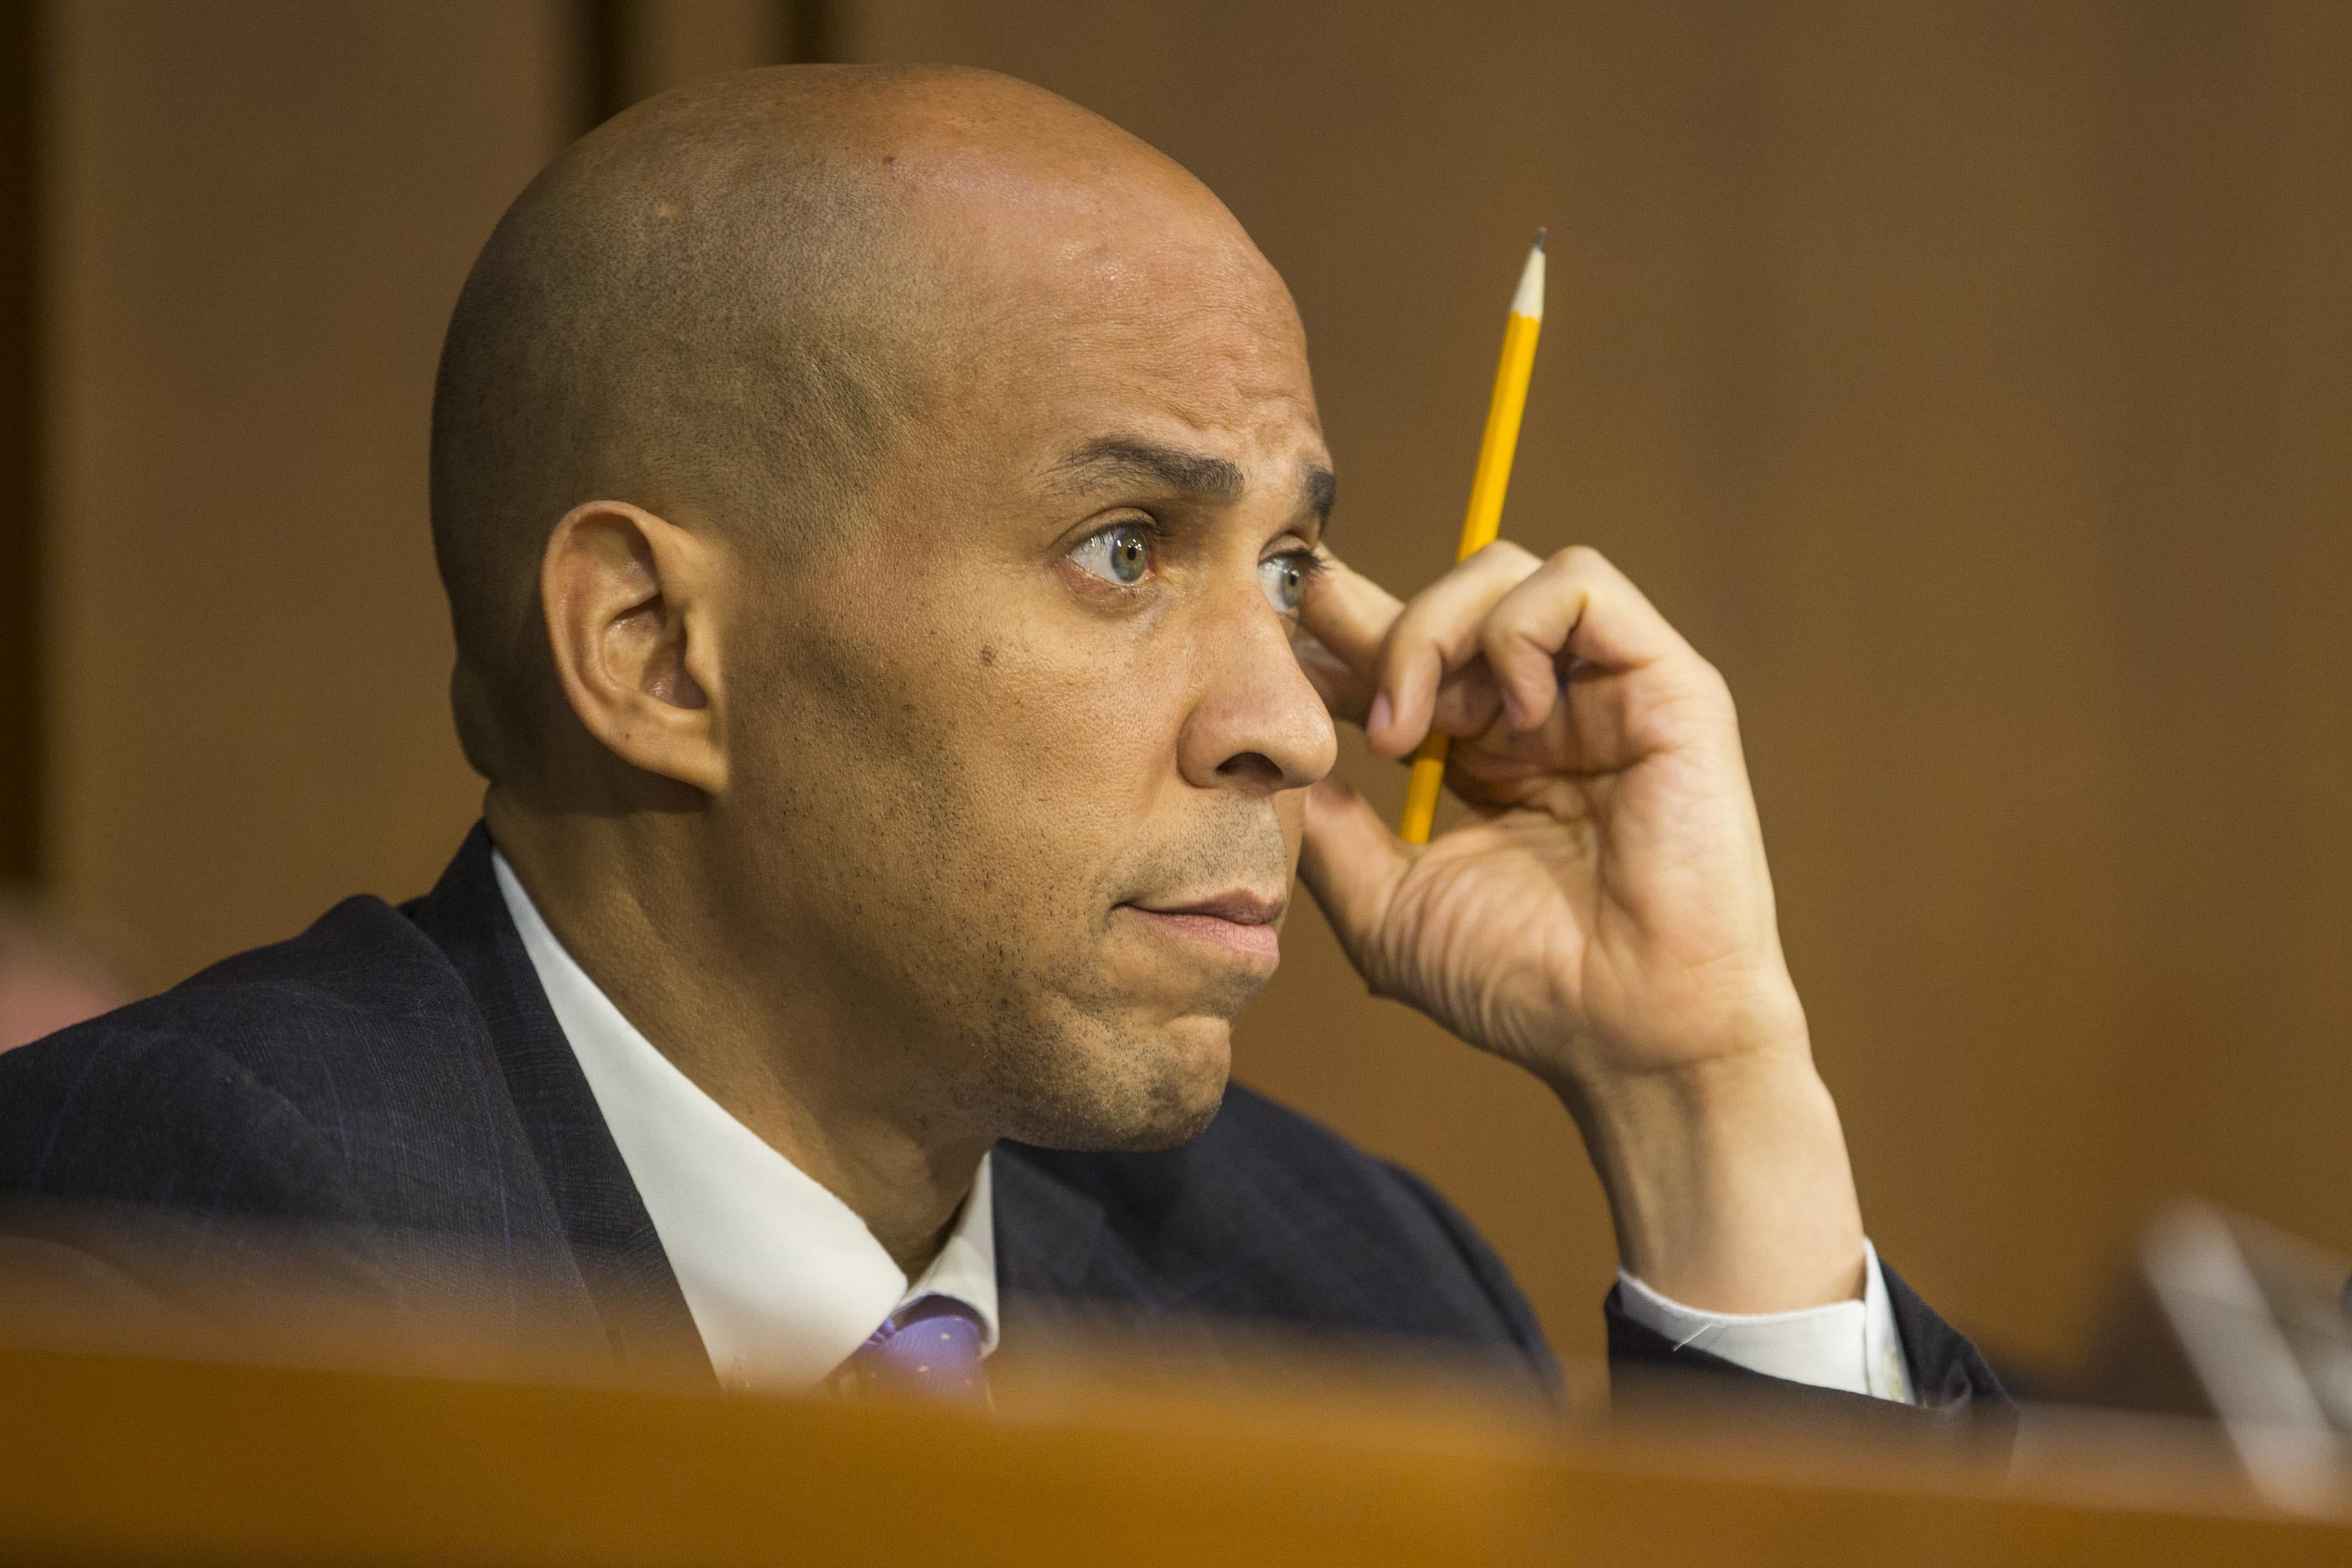 New Jersey Sen. Cory Booker touches his temple while holding a pencil as he listens during the second day of Brett Kavanaugh's confirmation hearing on Wednesday.